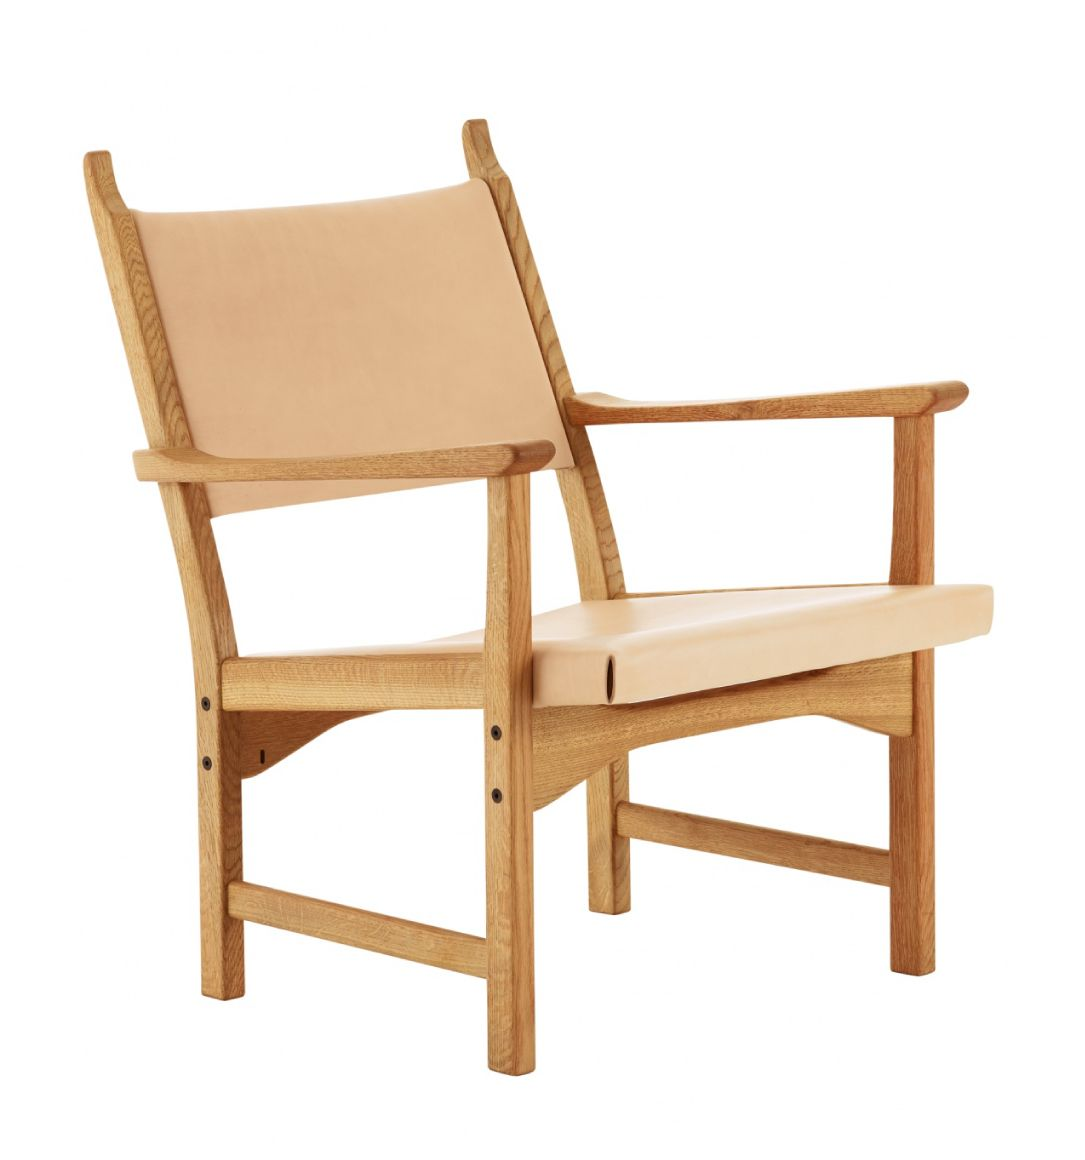 Hightower Chair Furniture Outdoor Chairs